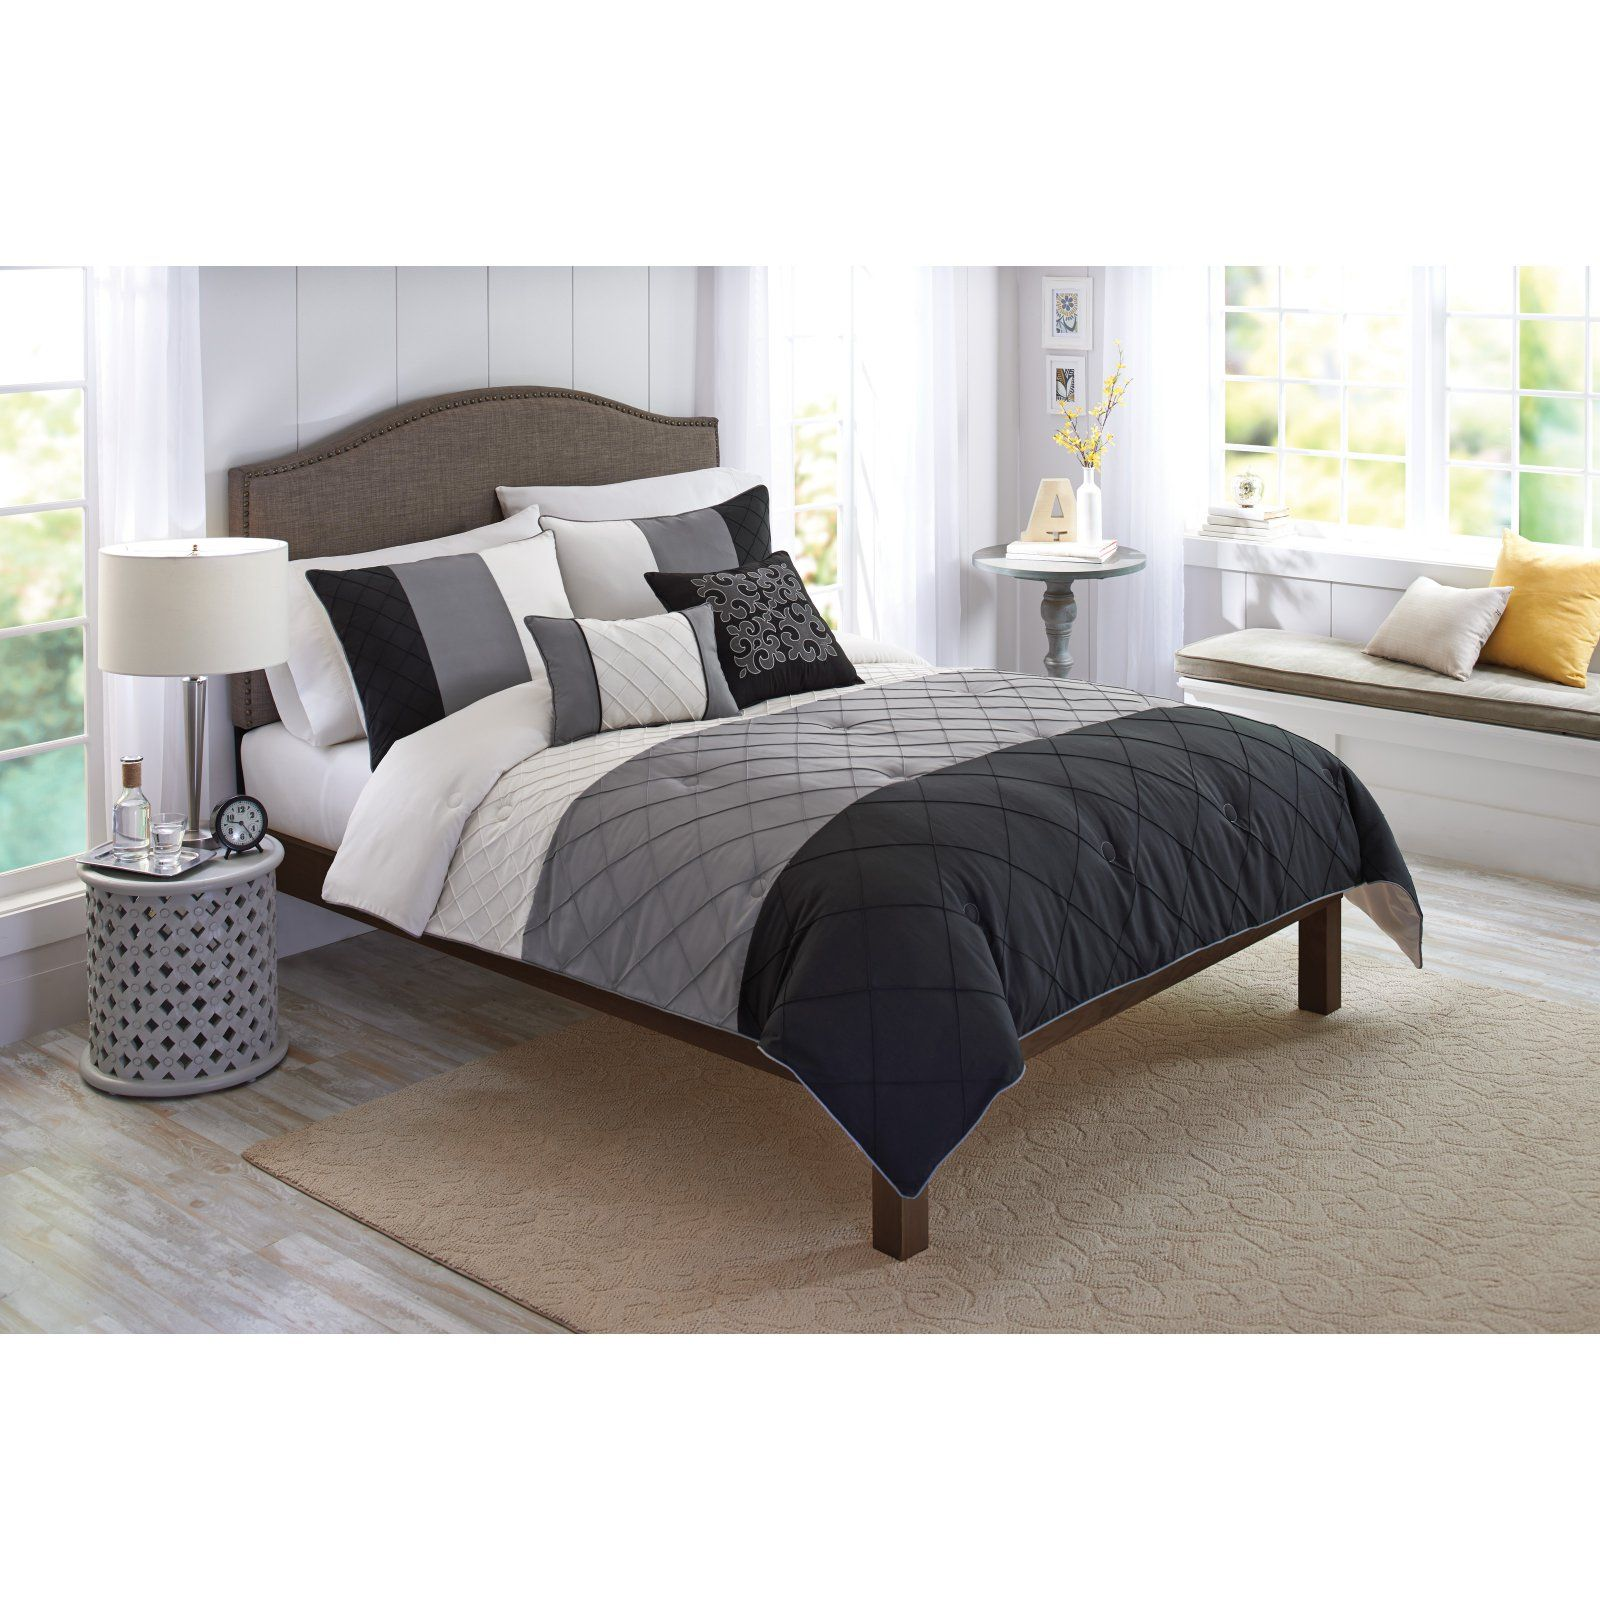 Onyx 5 Piece Comforter Set By Better Homes Gardens Comforter